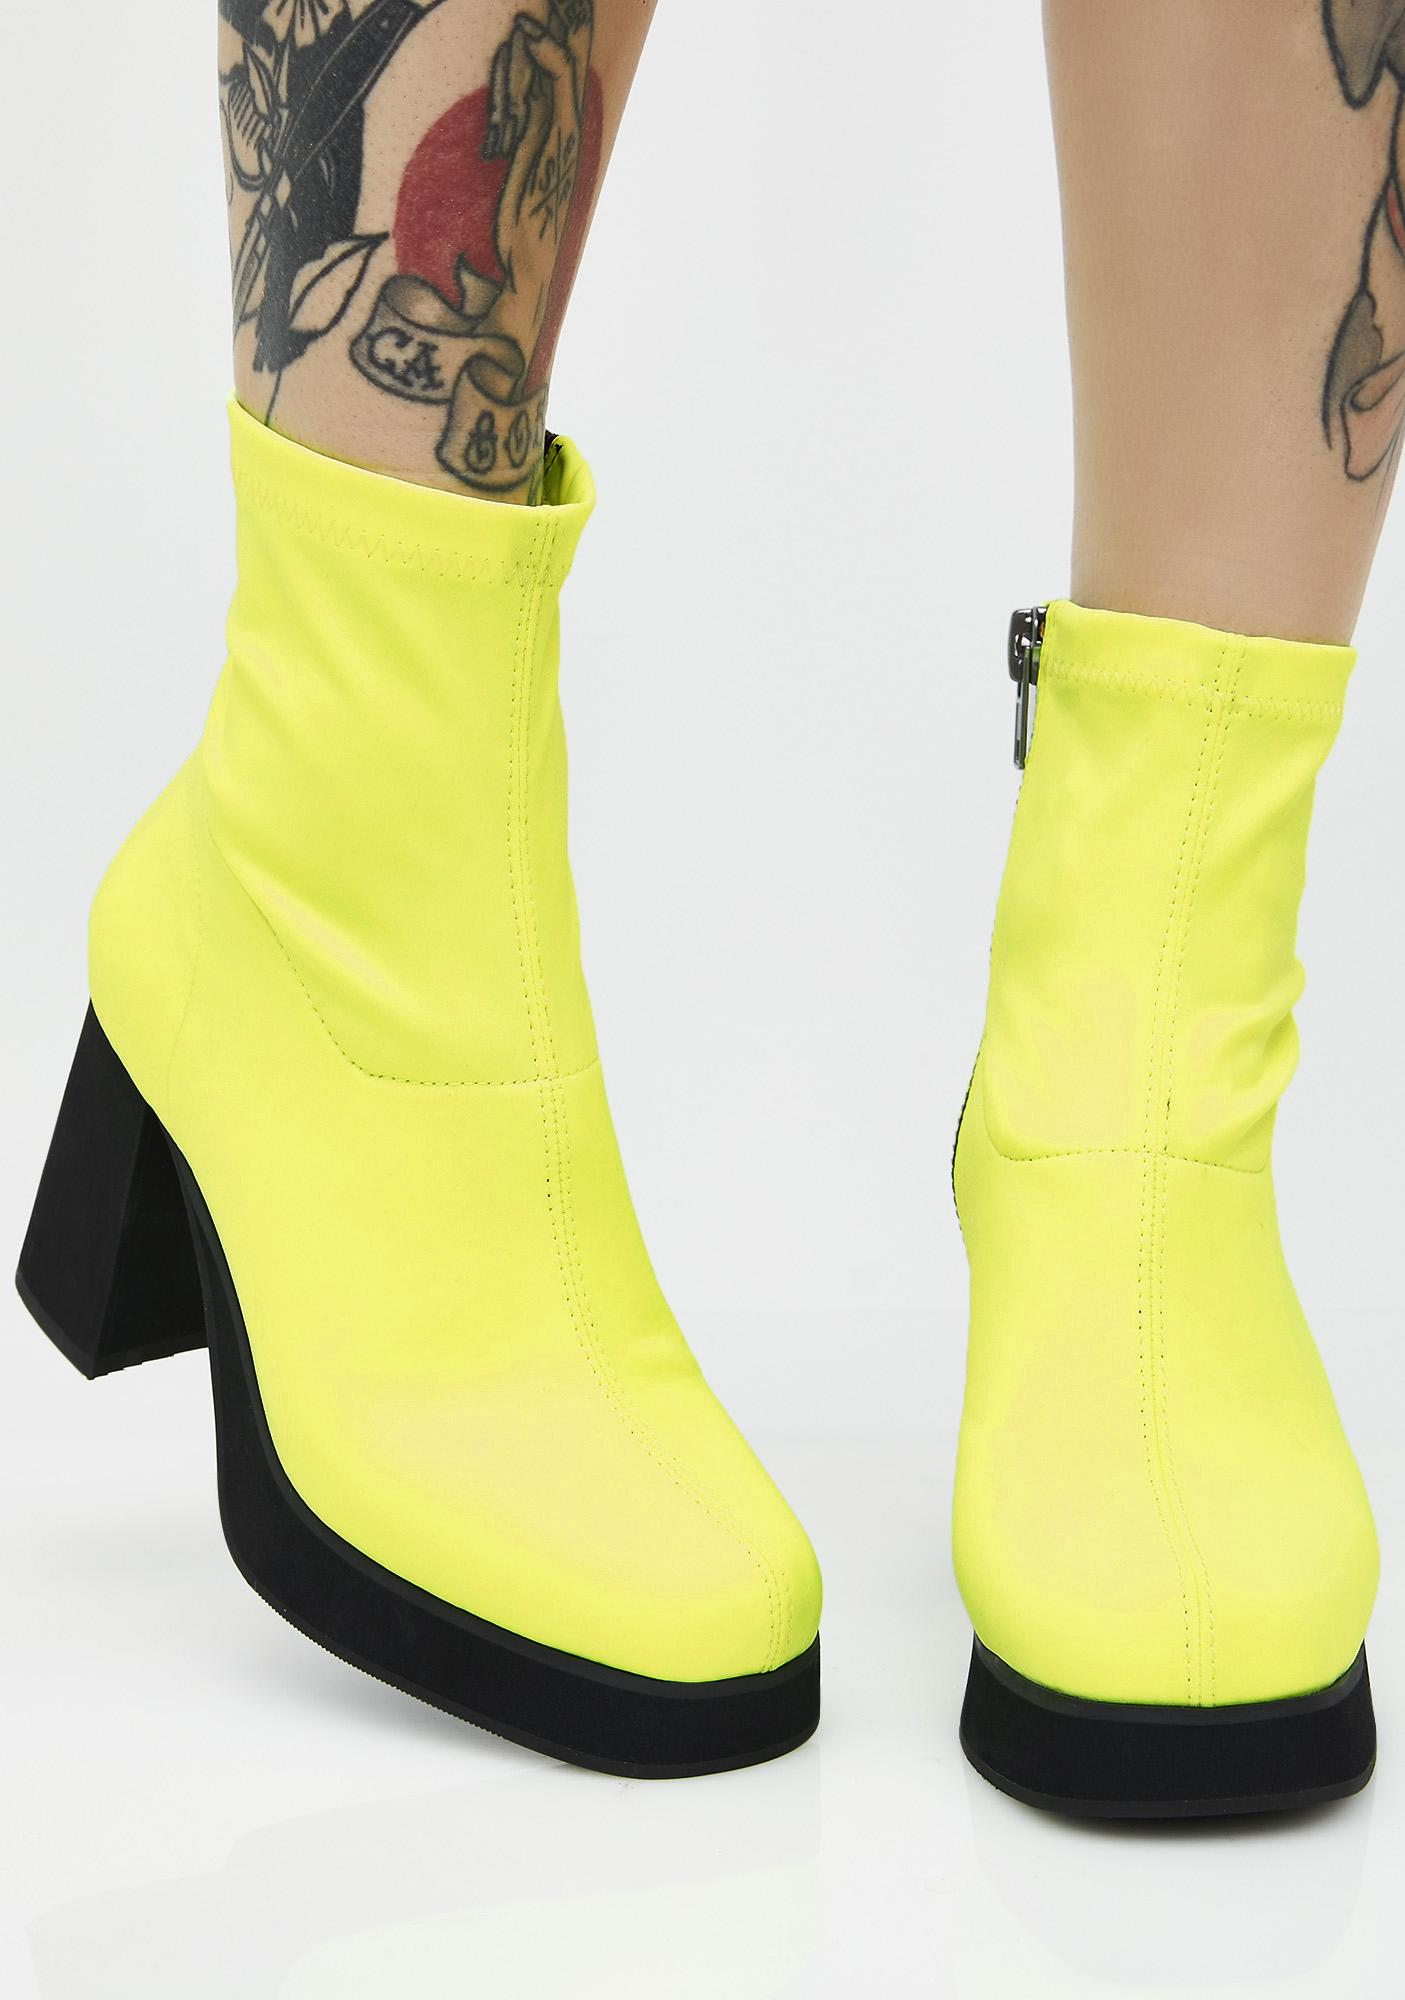 75b0a83f4f5c Current Mood Neon Tension Boots